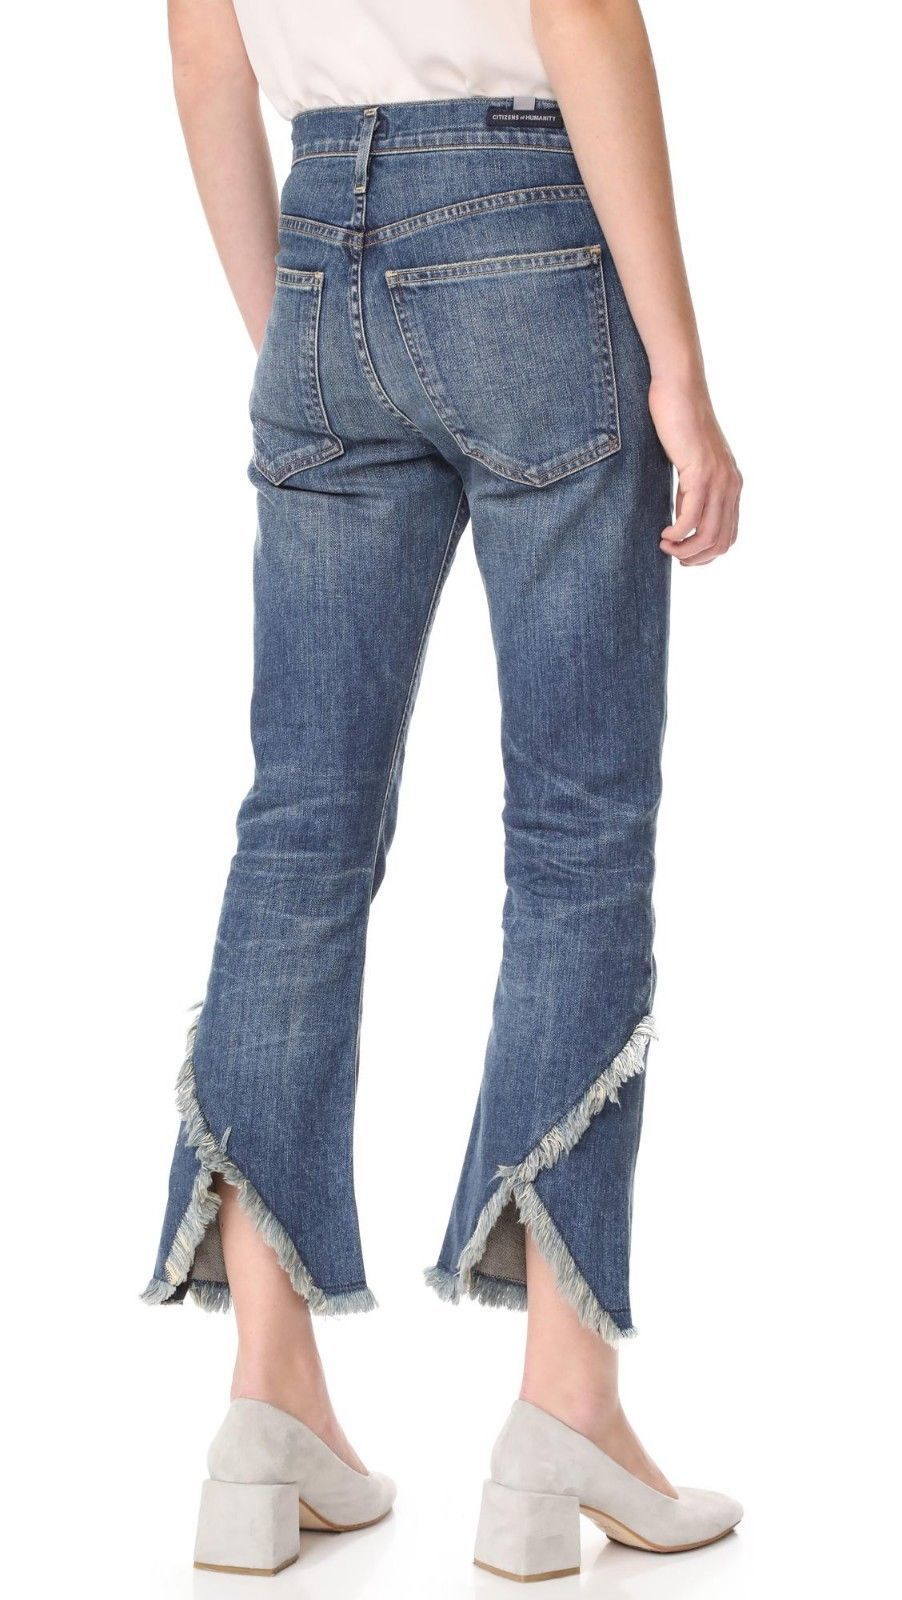 Primary image for NWT CITIZENS of HUMANITY DREW FRAY ALTERRA HIGH RISE CROP FLARE JEANS 30